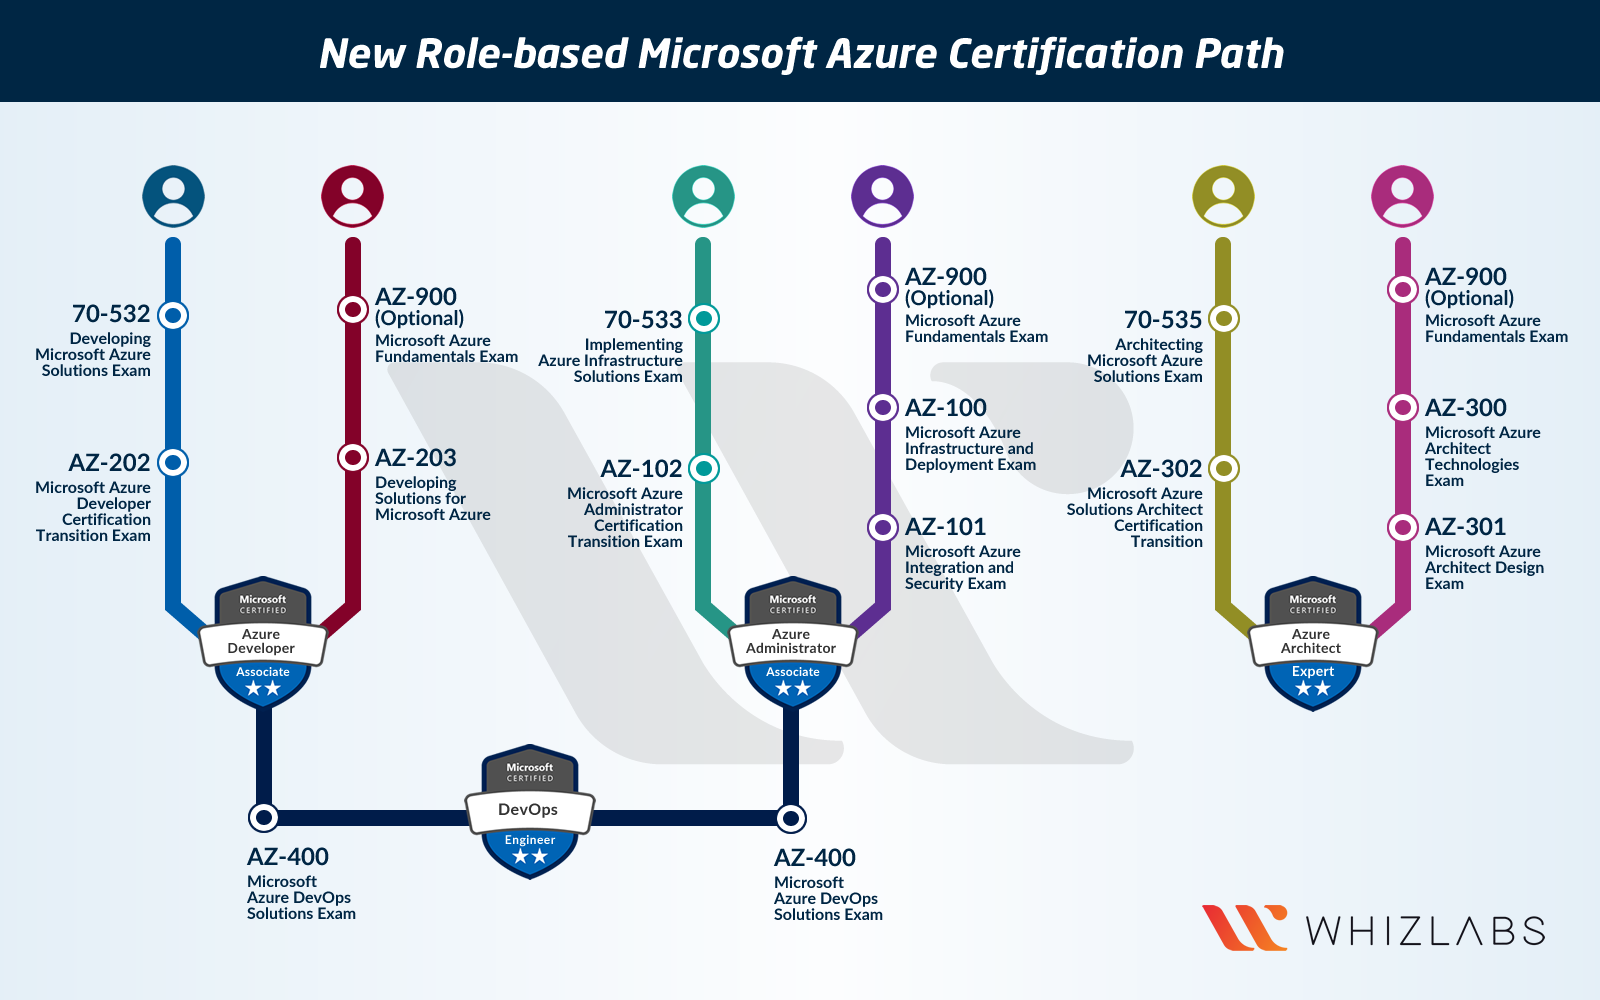 New Microsoft Azure Certifications Path In 2019 Whizlabs Blog